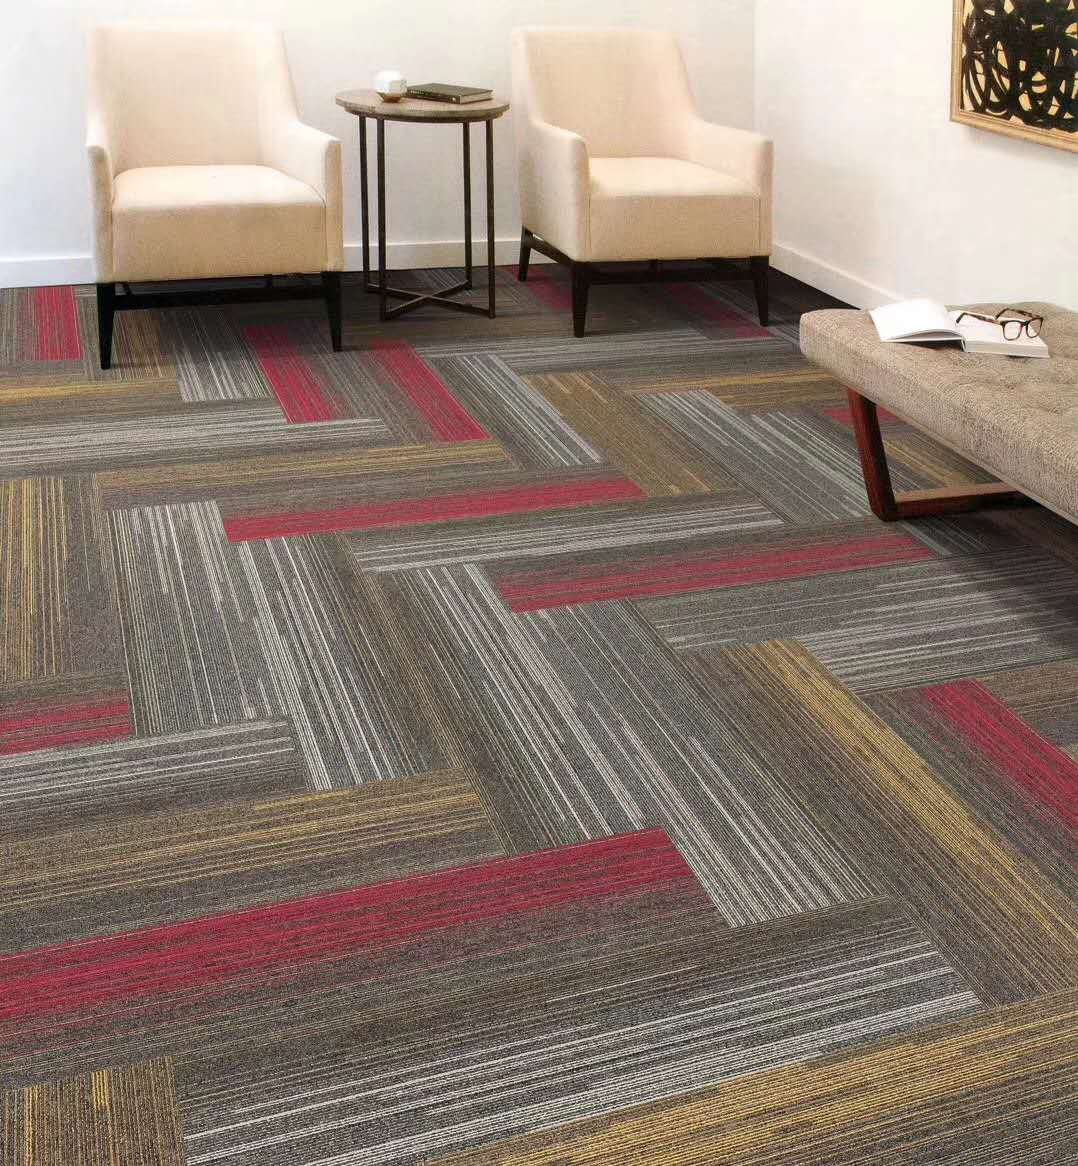 Commercial carpet Prices